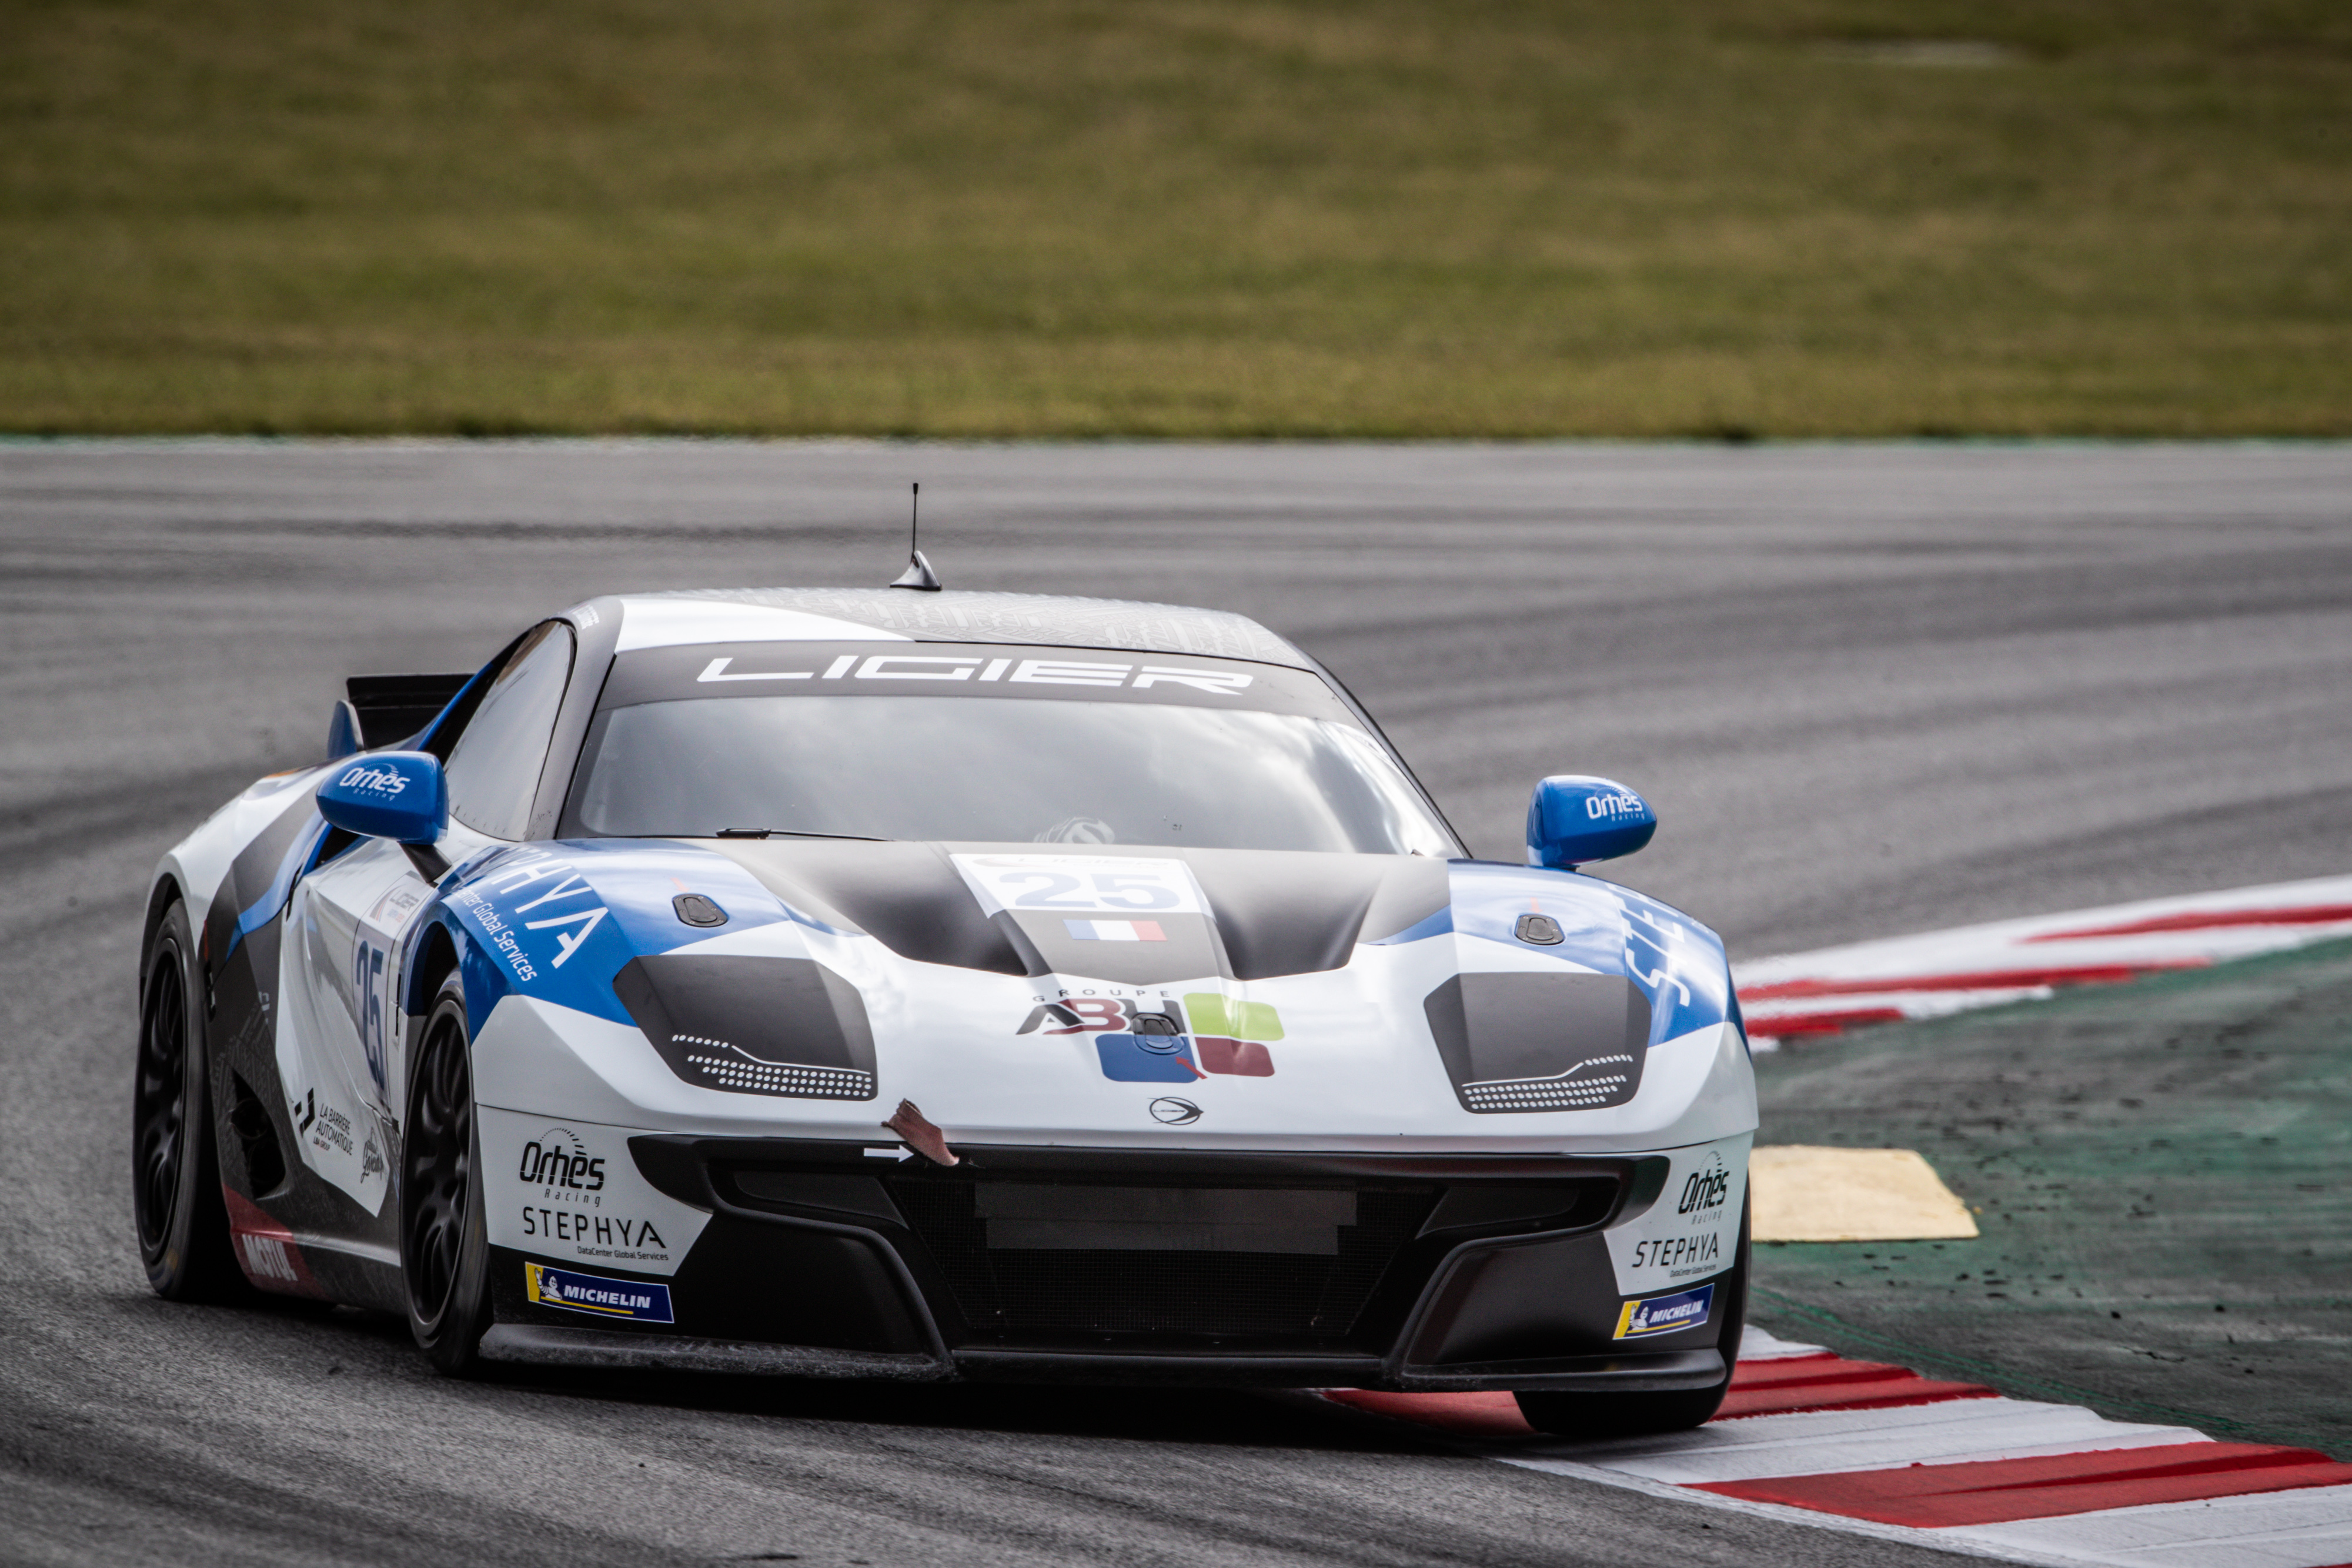 25 Bucher Alain (eau), Tsamere-Tsedri Arnaud (fra), Orhes Racing, Ligier JS2 R, action , during the Heat 1 - Barcelona of the 2021 Ligier European Series, from April 15 to 17, 2021 on the Circuit de Barcelona-Catalunya, in Montmelo, near Barcelona, Spain - Photo Frédéric Le Floc'h / DPPI